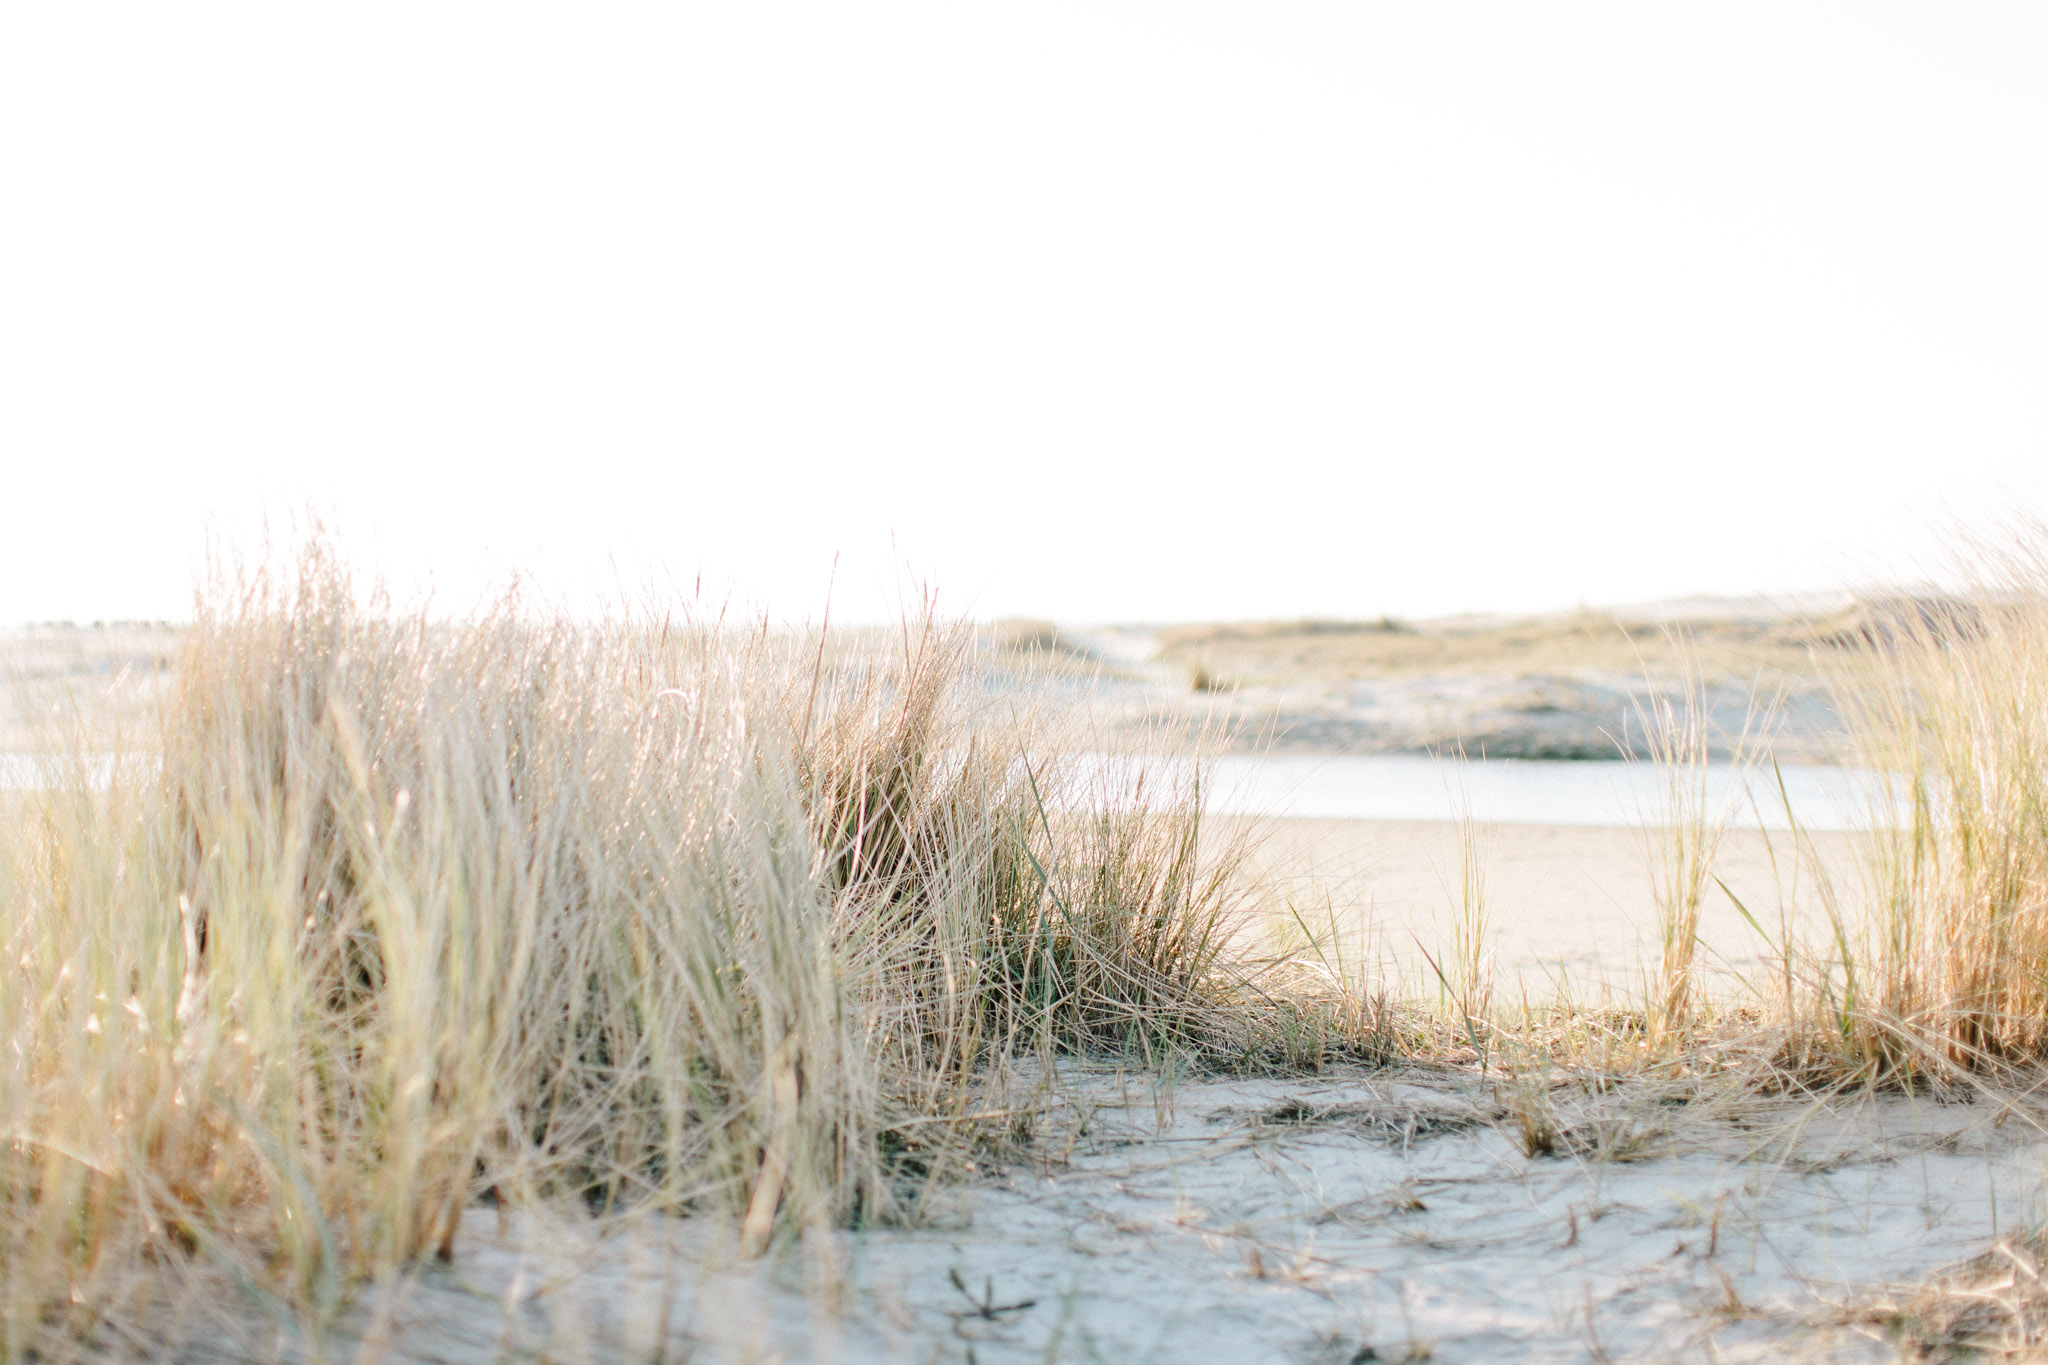 Sankt-Peter-Ording-Engagement-Pia-Anna-Christian-Wedding-Photography-KT-20.jpg